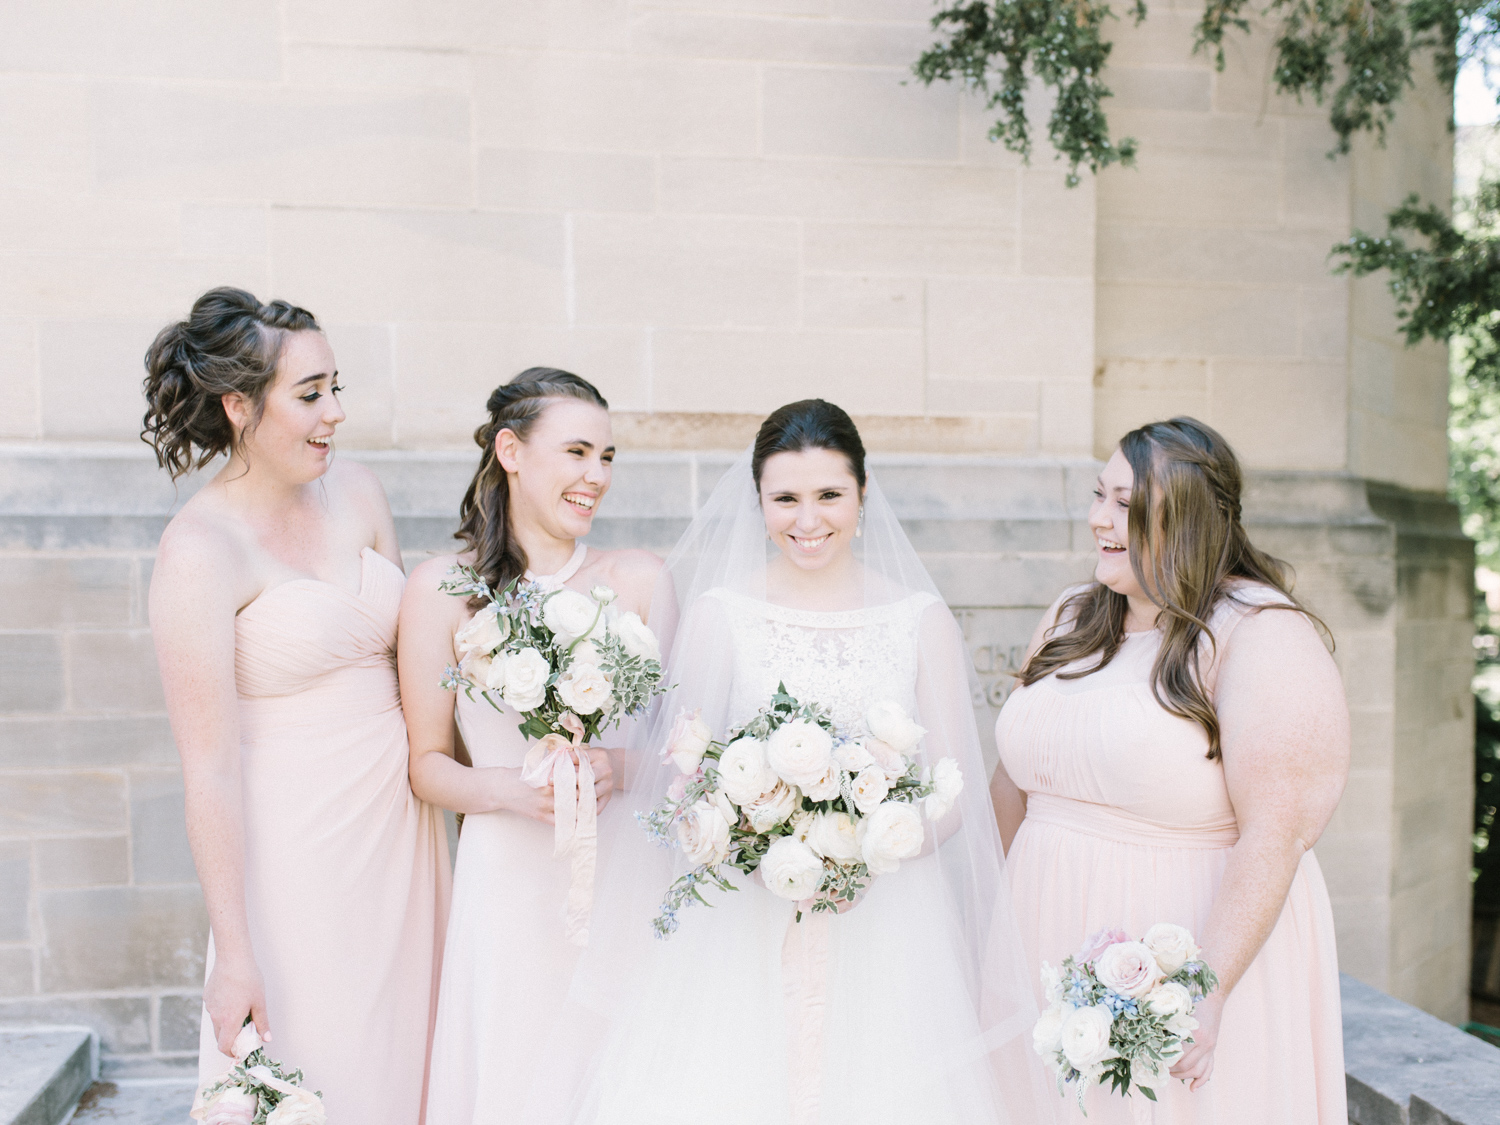 Smiling bridesmaids in blush dresses laugh with the bride outside a church in Ann Arbor, Michigan